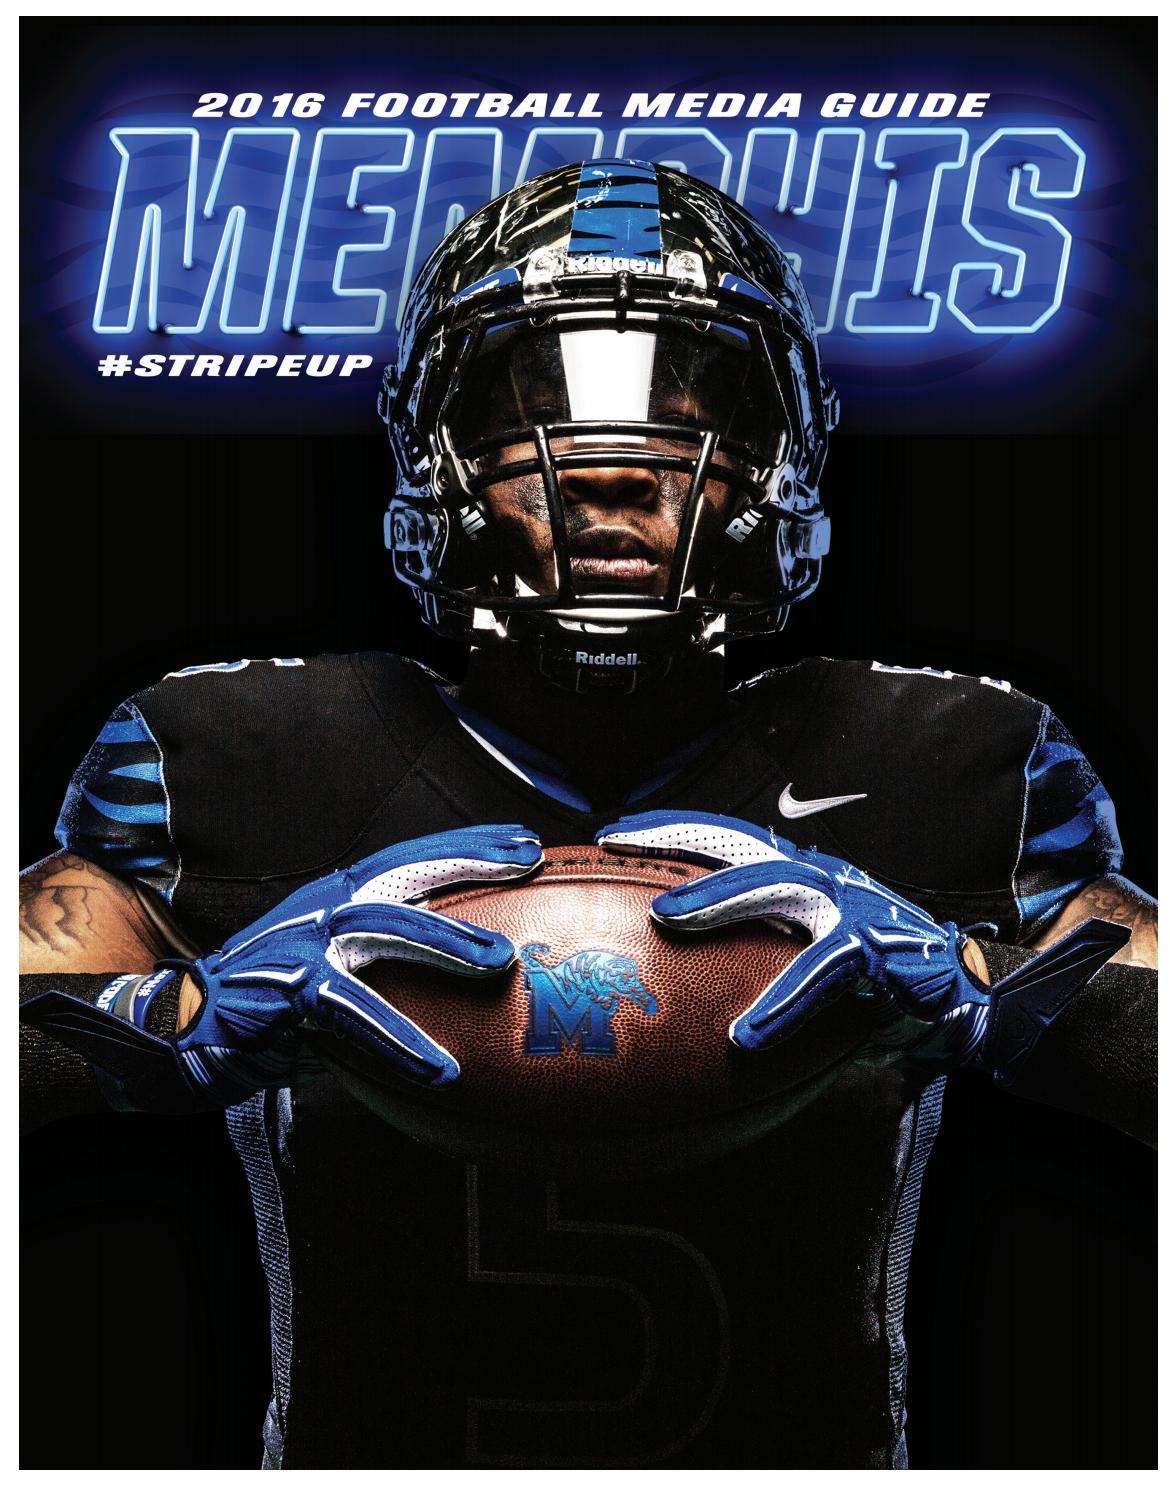 2016 Memphis Football Media Guide by University of Memphis Athletic Media  Relations - issuu 8c826dc5a